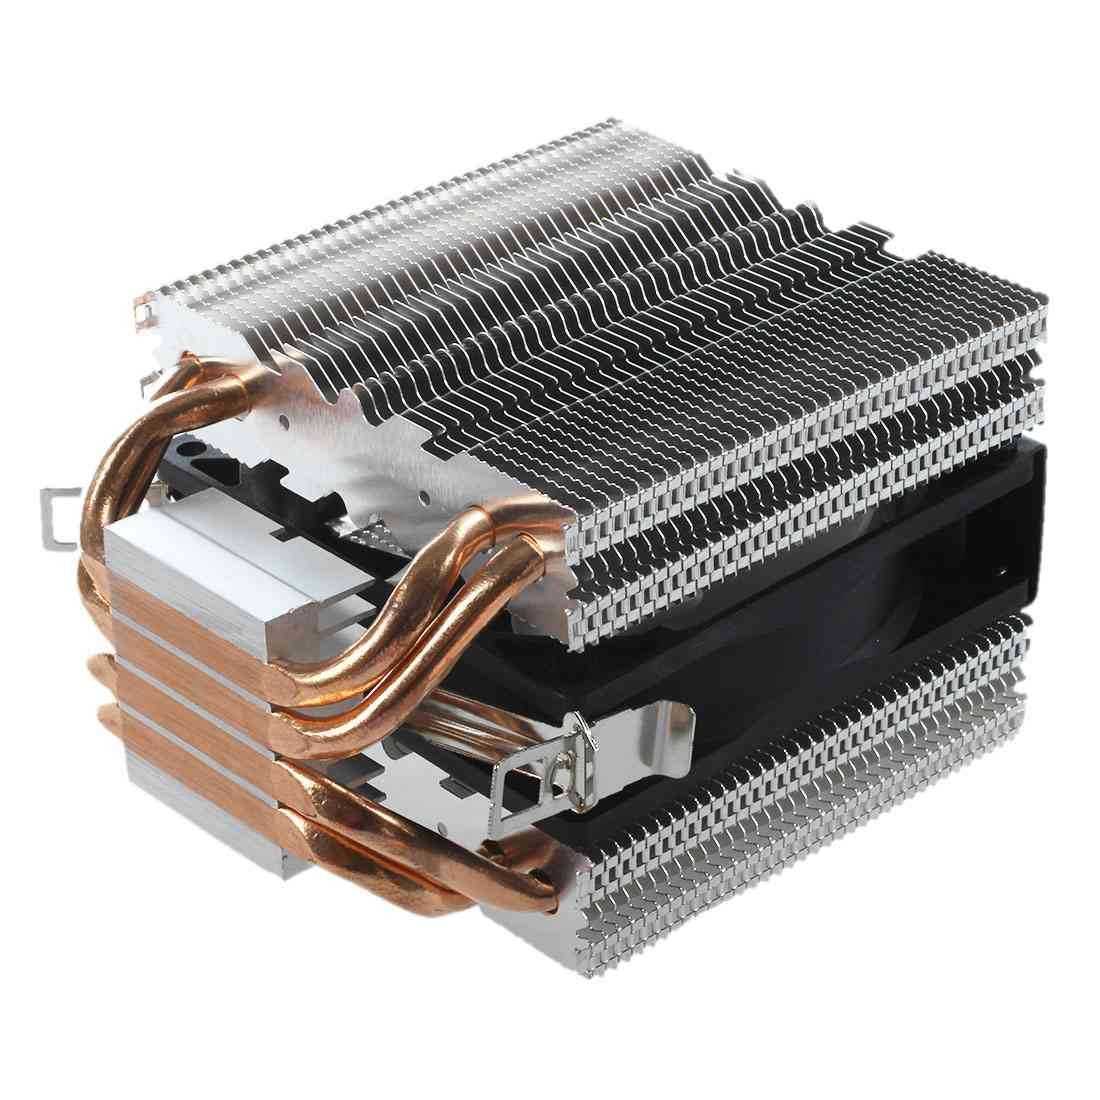 4 Heatpipe CPU Cooler Heat Sink for Intel LGA 1150 1151 1155 775 1156 AMD New alloyseed g1 4 thread computer water cooling gpu waterblock cpu radiator cooler for intel lga 1150 1151 1155 1156